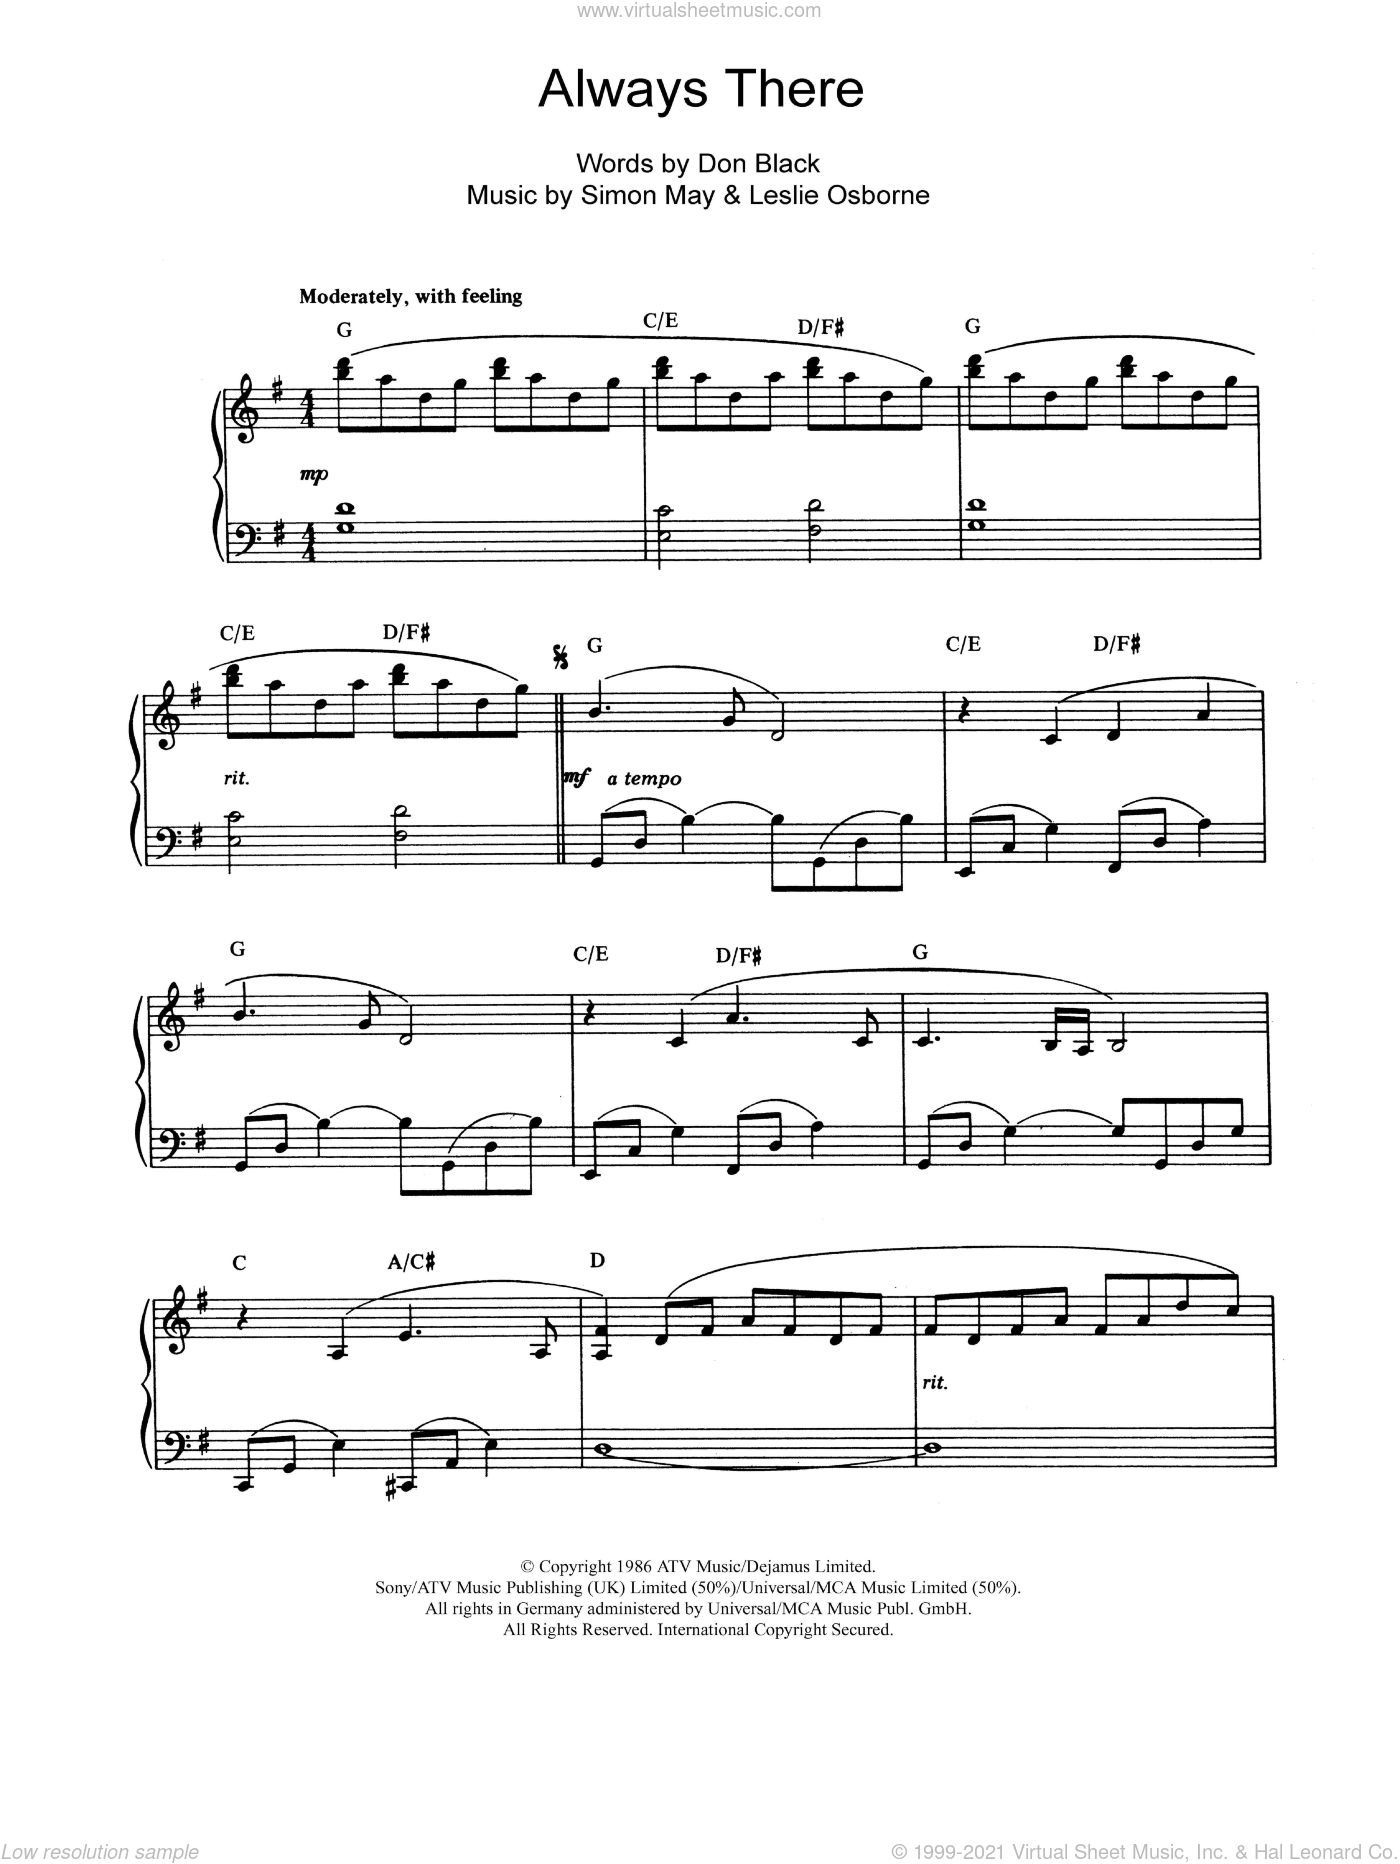 Always There sheet music for piano solo by Simon May, Don Black and Leslie Osborne. Score Image Preview.